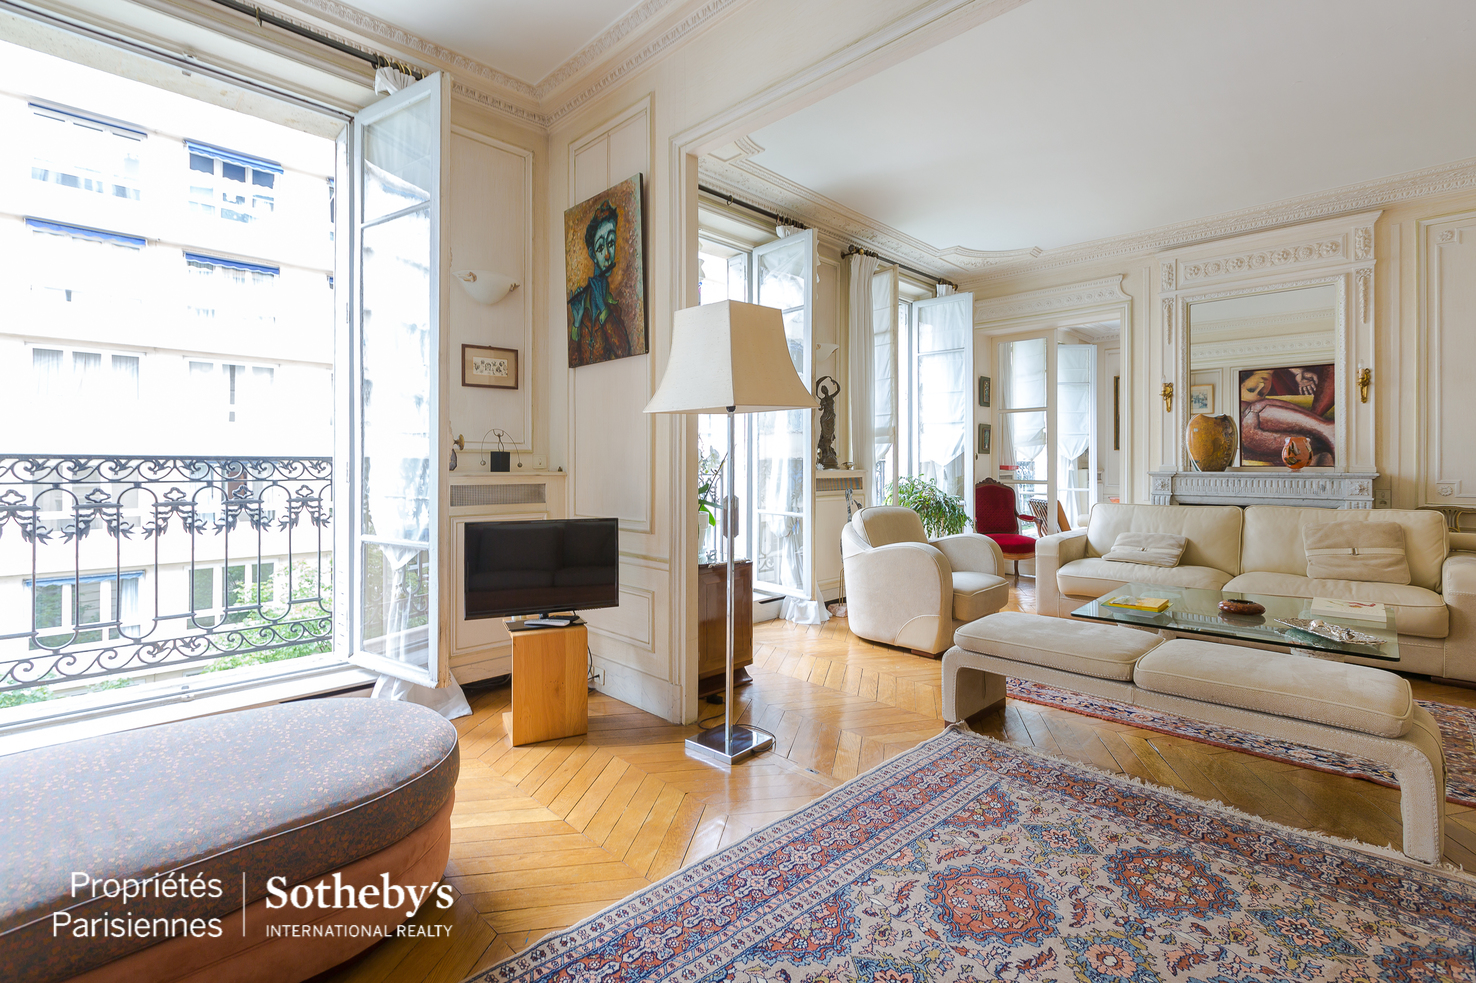 Property For Sale at Michel Ange Marché d'Auteuil